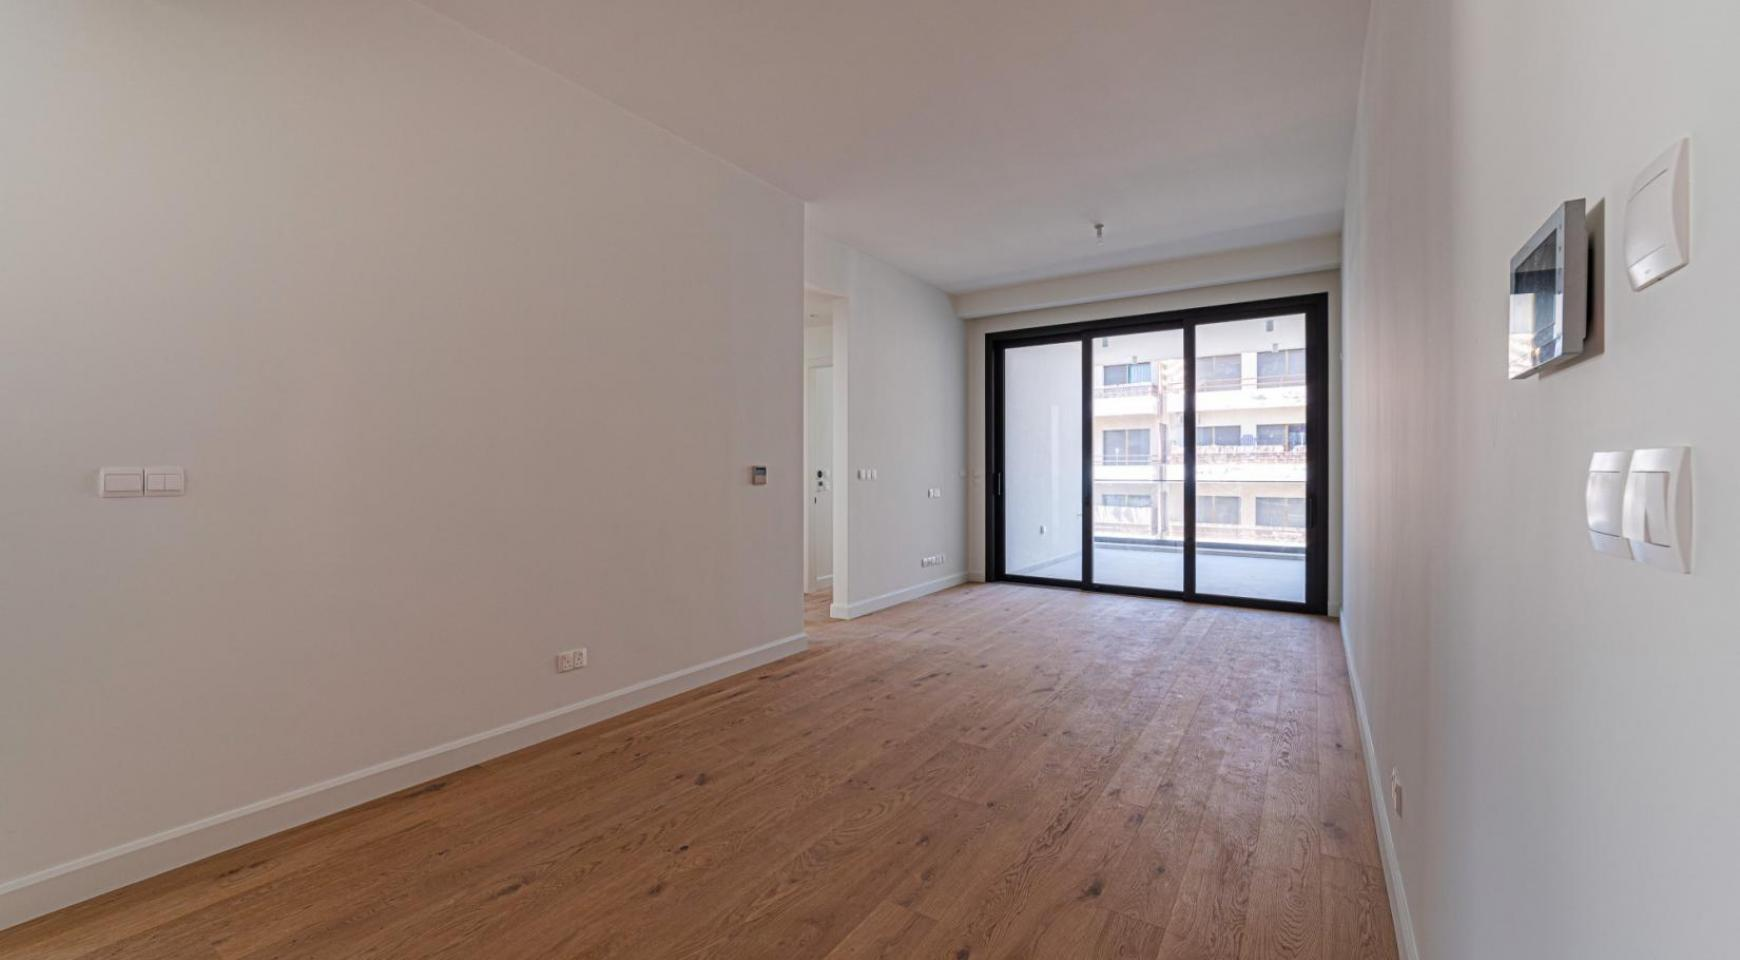 HORTENSIA RESIDENCE, Apt. 101. 2 Bedroom Apartment  in a New Complex near the Sea - 9